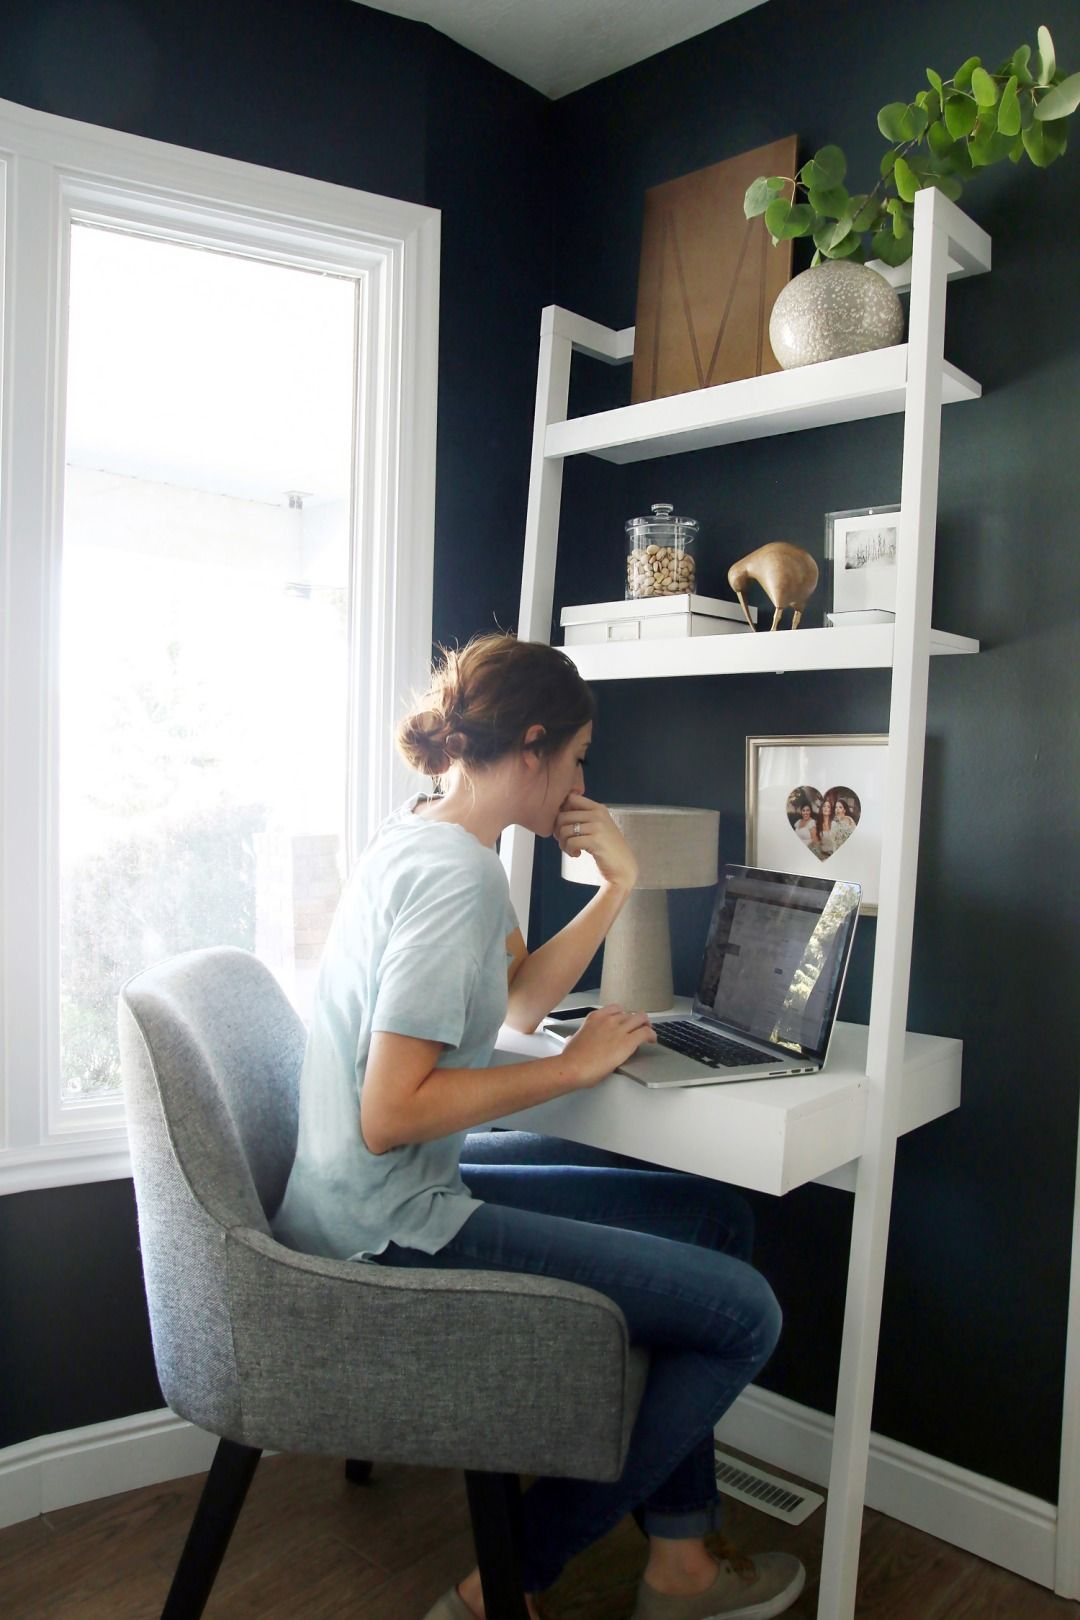 Exceptional Create A Stylish, Productive Little Nook, Even When Space Is Tight, With  Our Chic, Modern Home Office Ideas For Small Spaces From @chrislovesjulia.